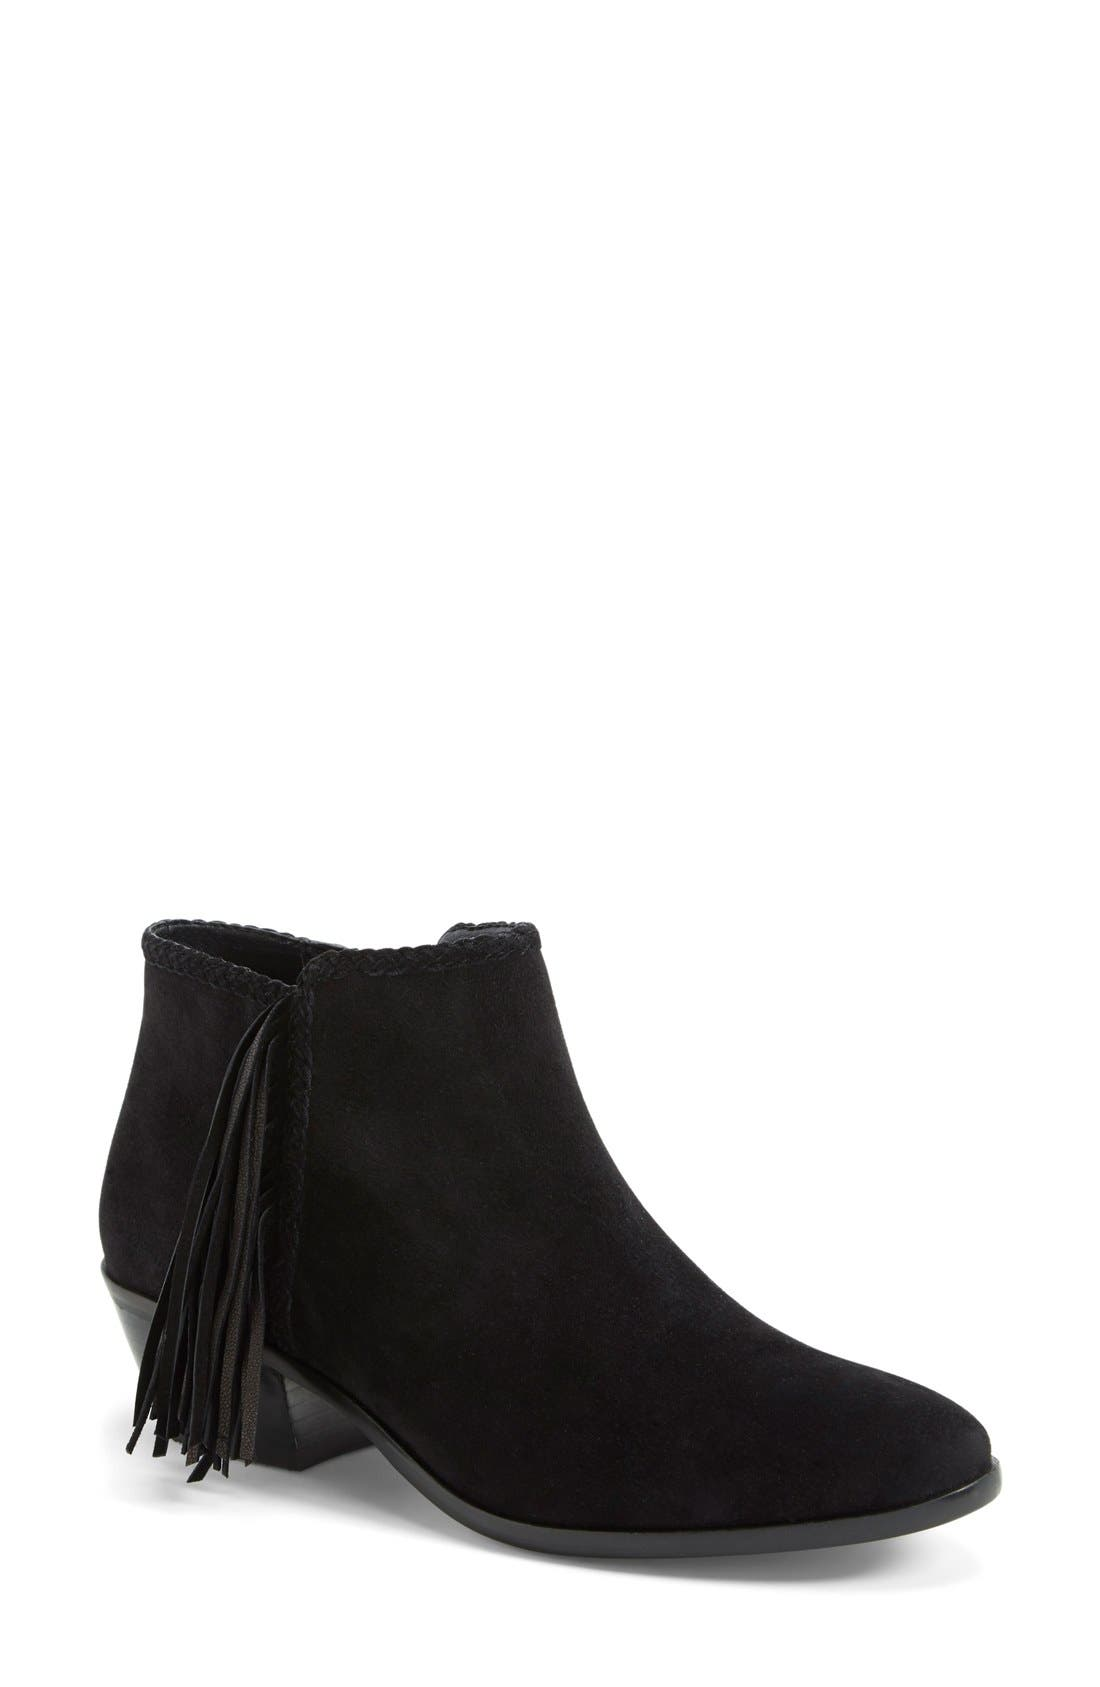 'Paige' Fringed Ankle Bootie,                         Main,                         color, 004